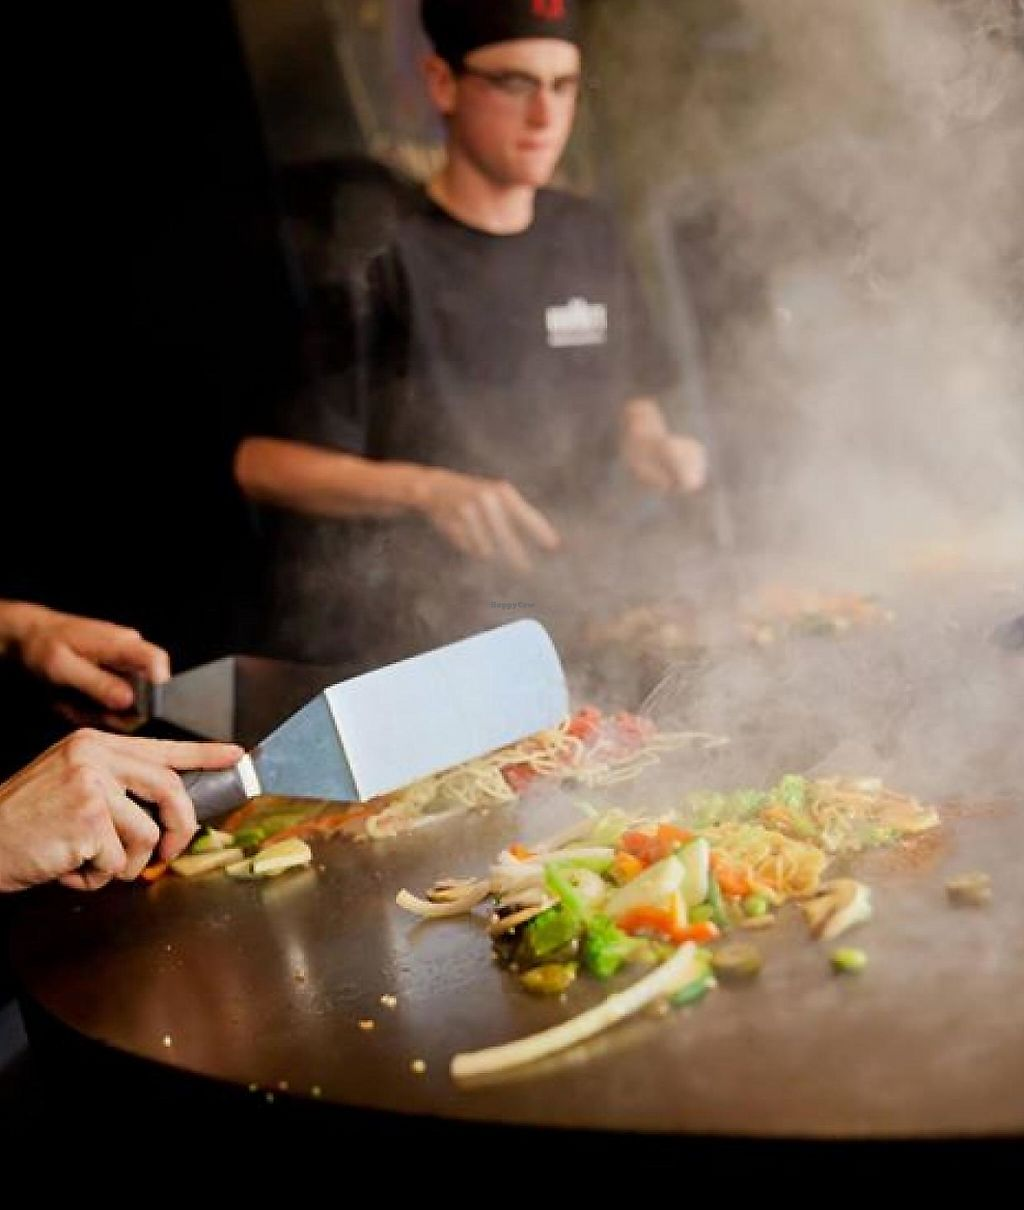 """Photo of HuHot Mongolian Grill  by <a href=""""/members/profile/community"""">community</a> <br/>HuHot Mongolian Grill <br/> March 13, 2014  - <a href='/contact/abuse/image/45835/191254'>Report</a>"""